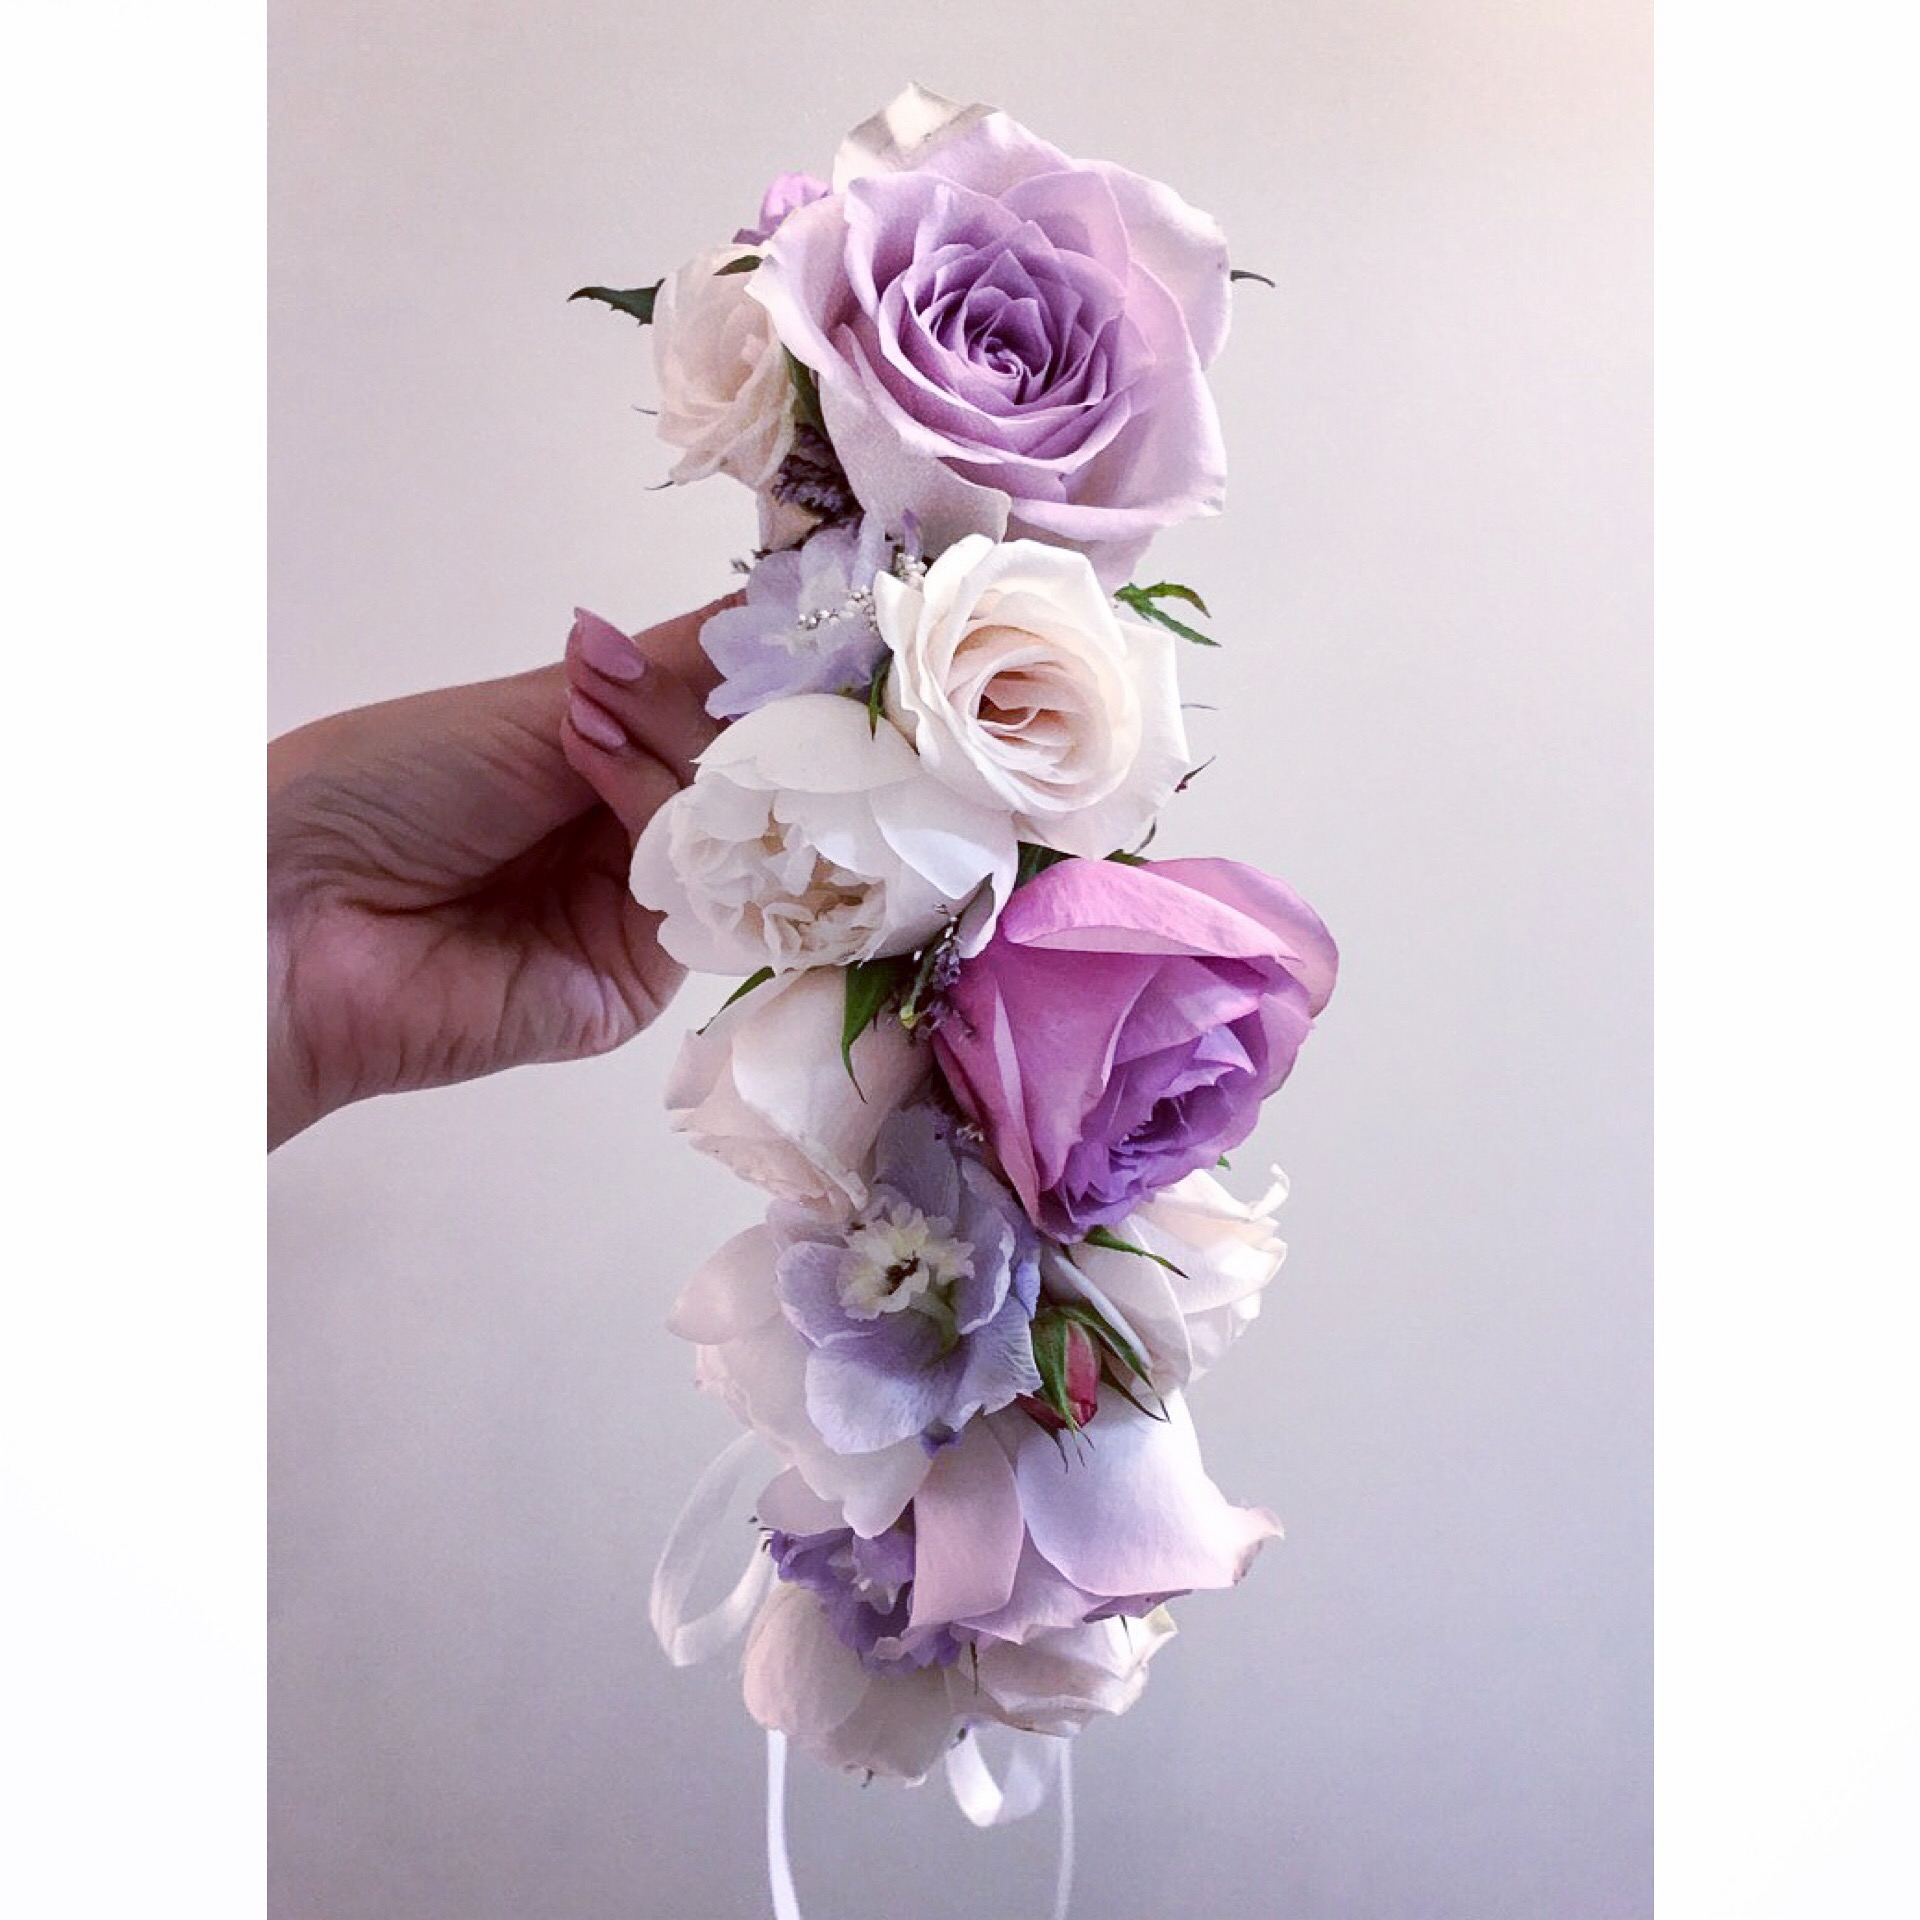 Hen's parties, Birthdays, Baby Showers - .... or any reason at all!Get the girls together for a fun afternoon of playing with flowers, nibbles, bubbles and plenty of laughs...Workshops currently available:-Flower CrownsEnquire below to find out more! L x